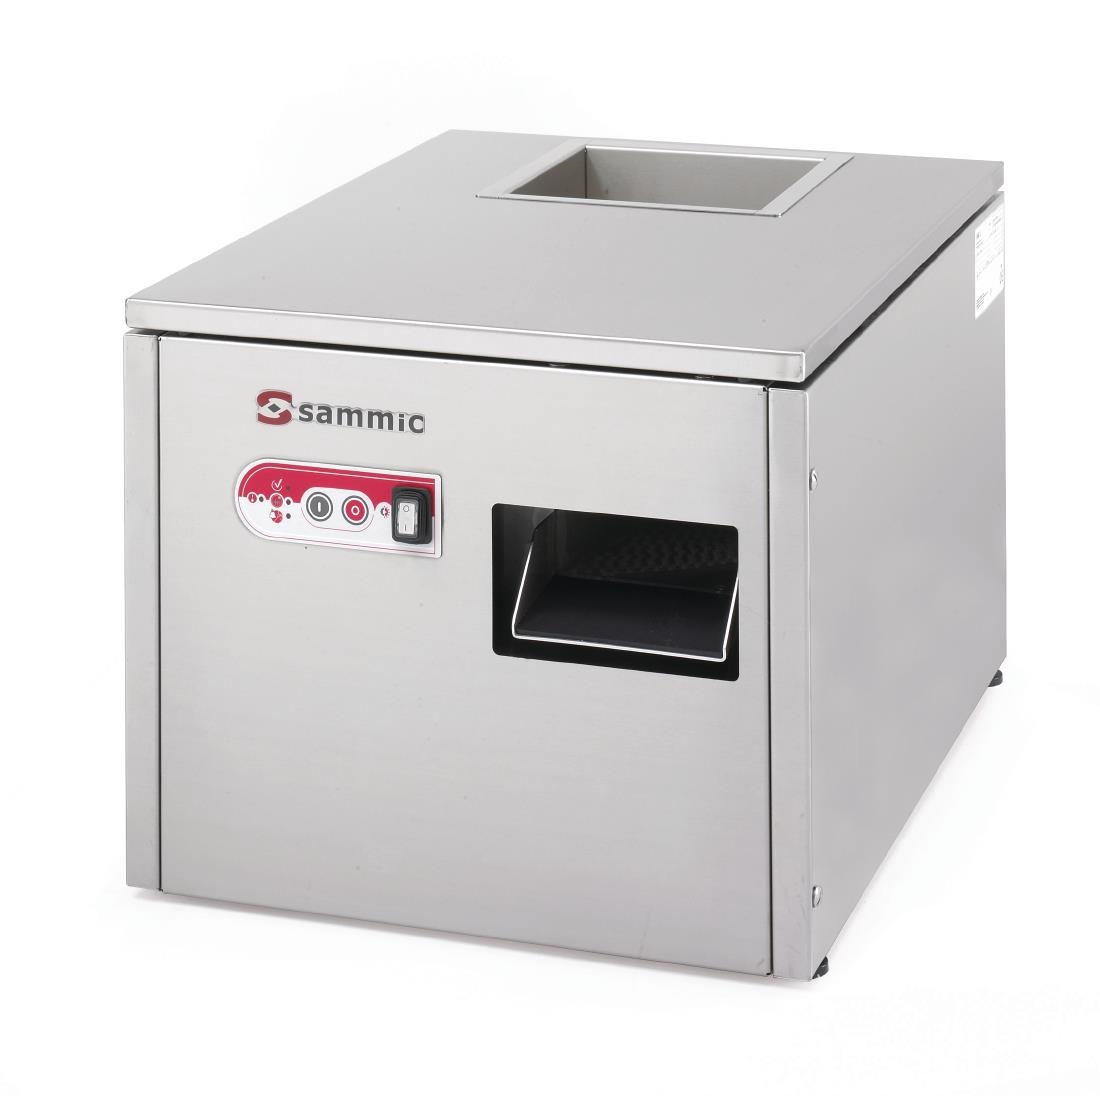 Image of Sammic Cutlery Polisher and Dryer